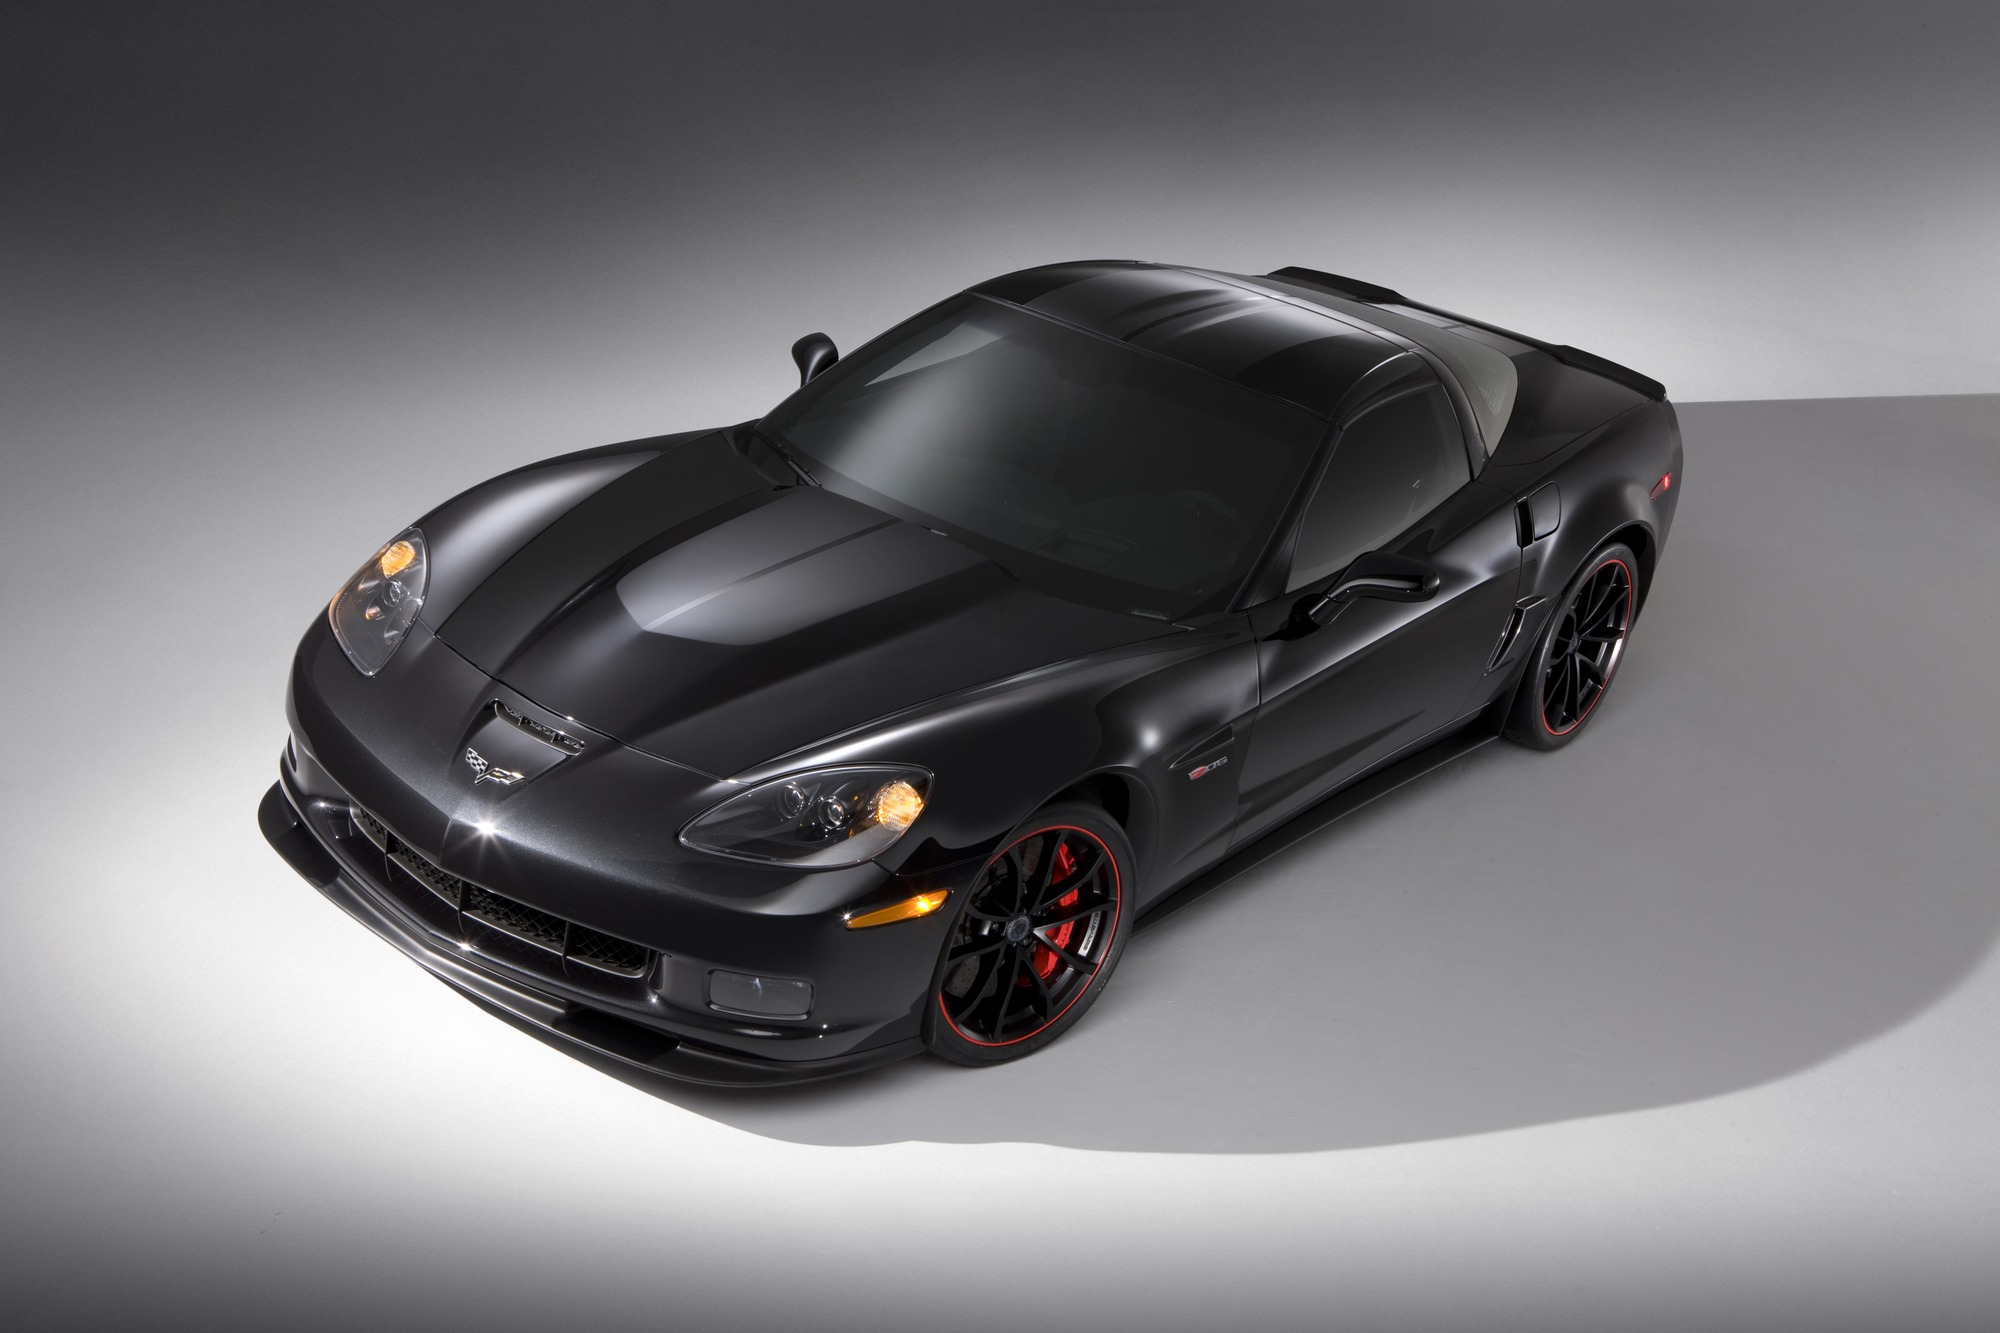 2019 Chevrolet Corvette ZR1 photo - 1